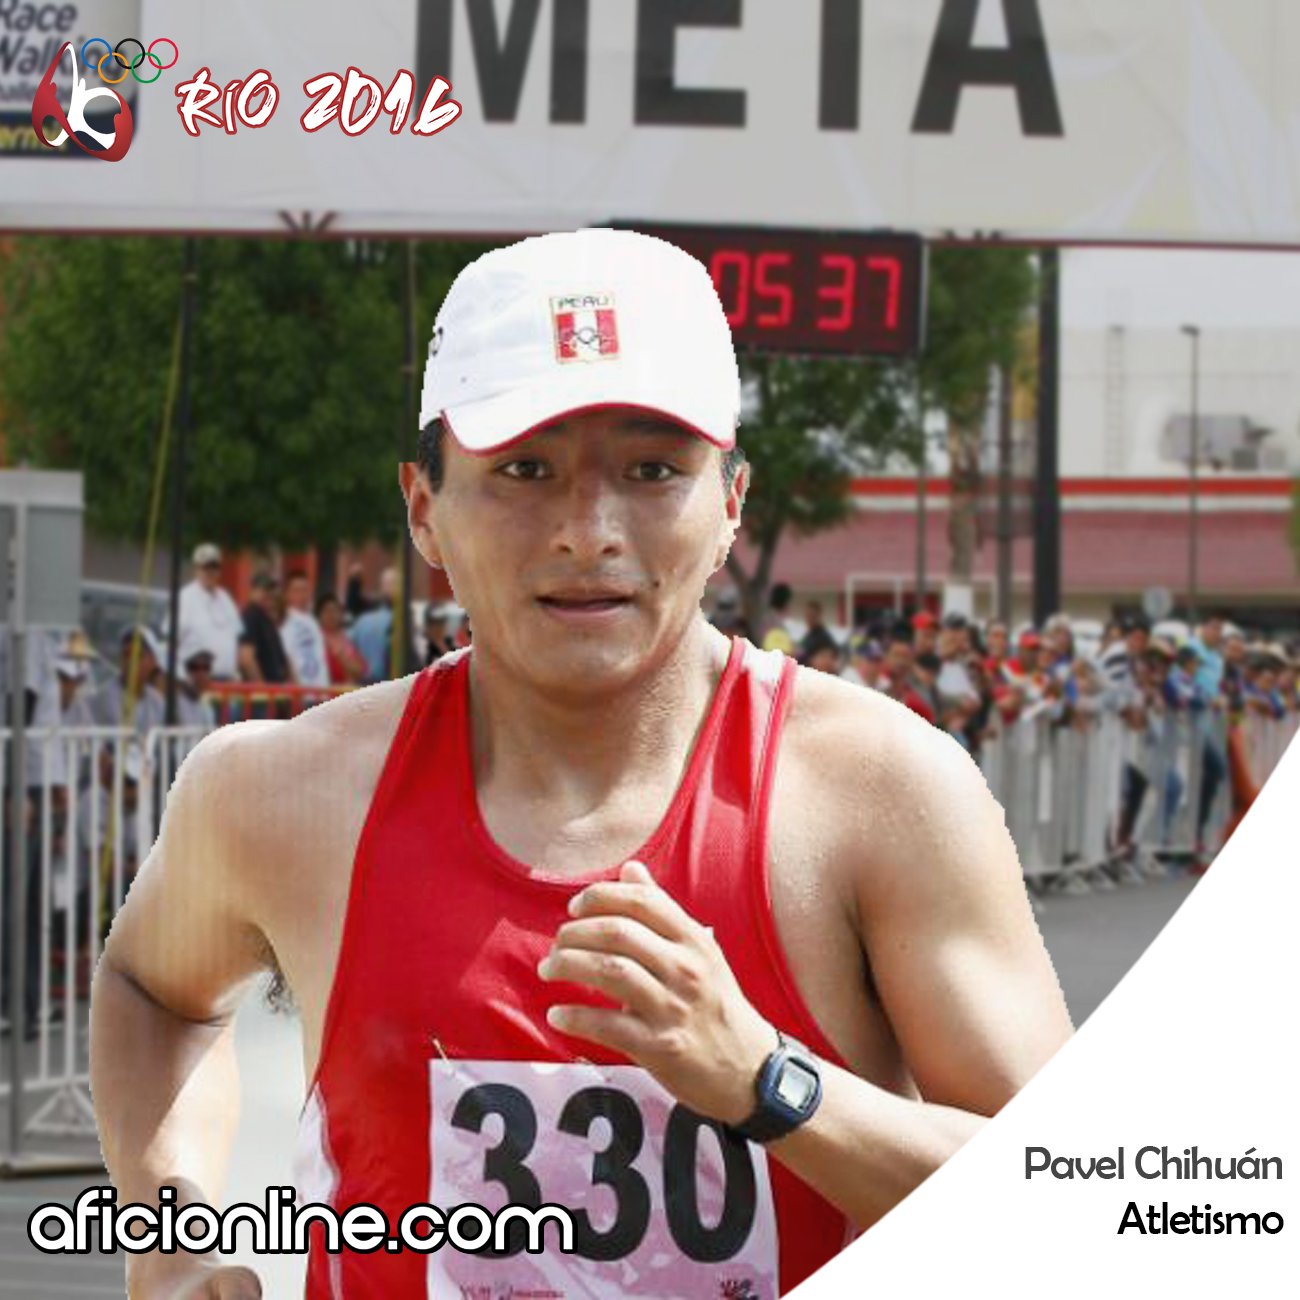 Pavel chihuan rio 2016 (2)